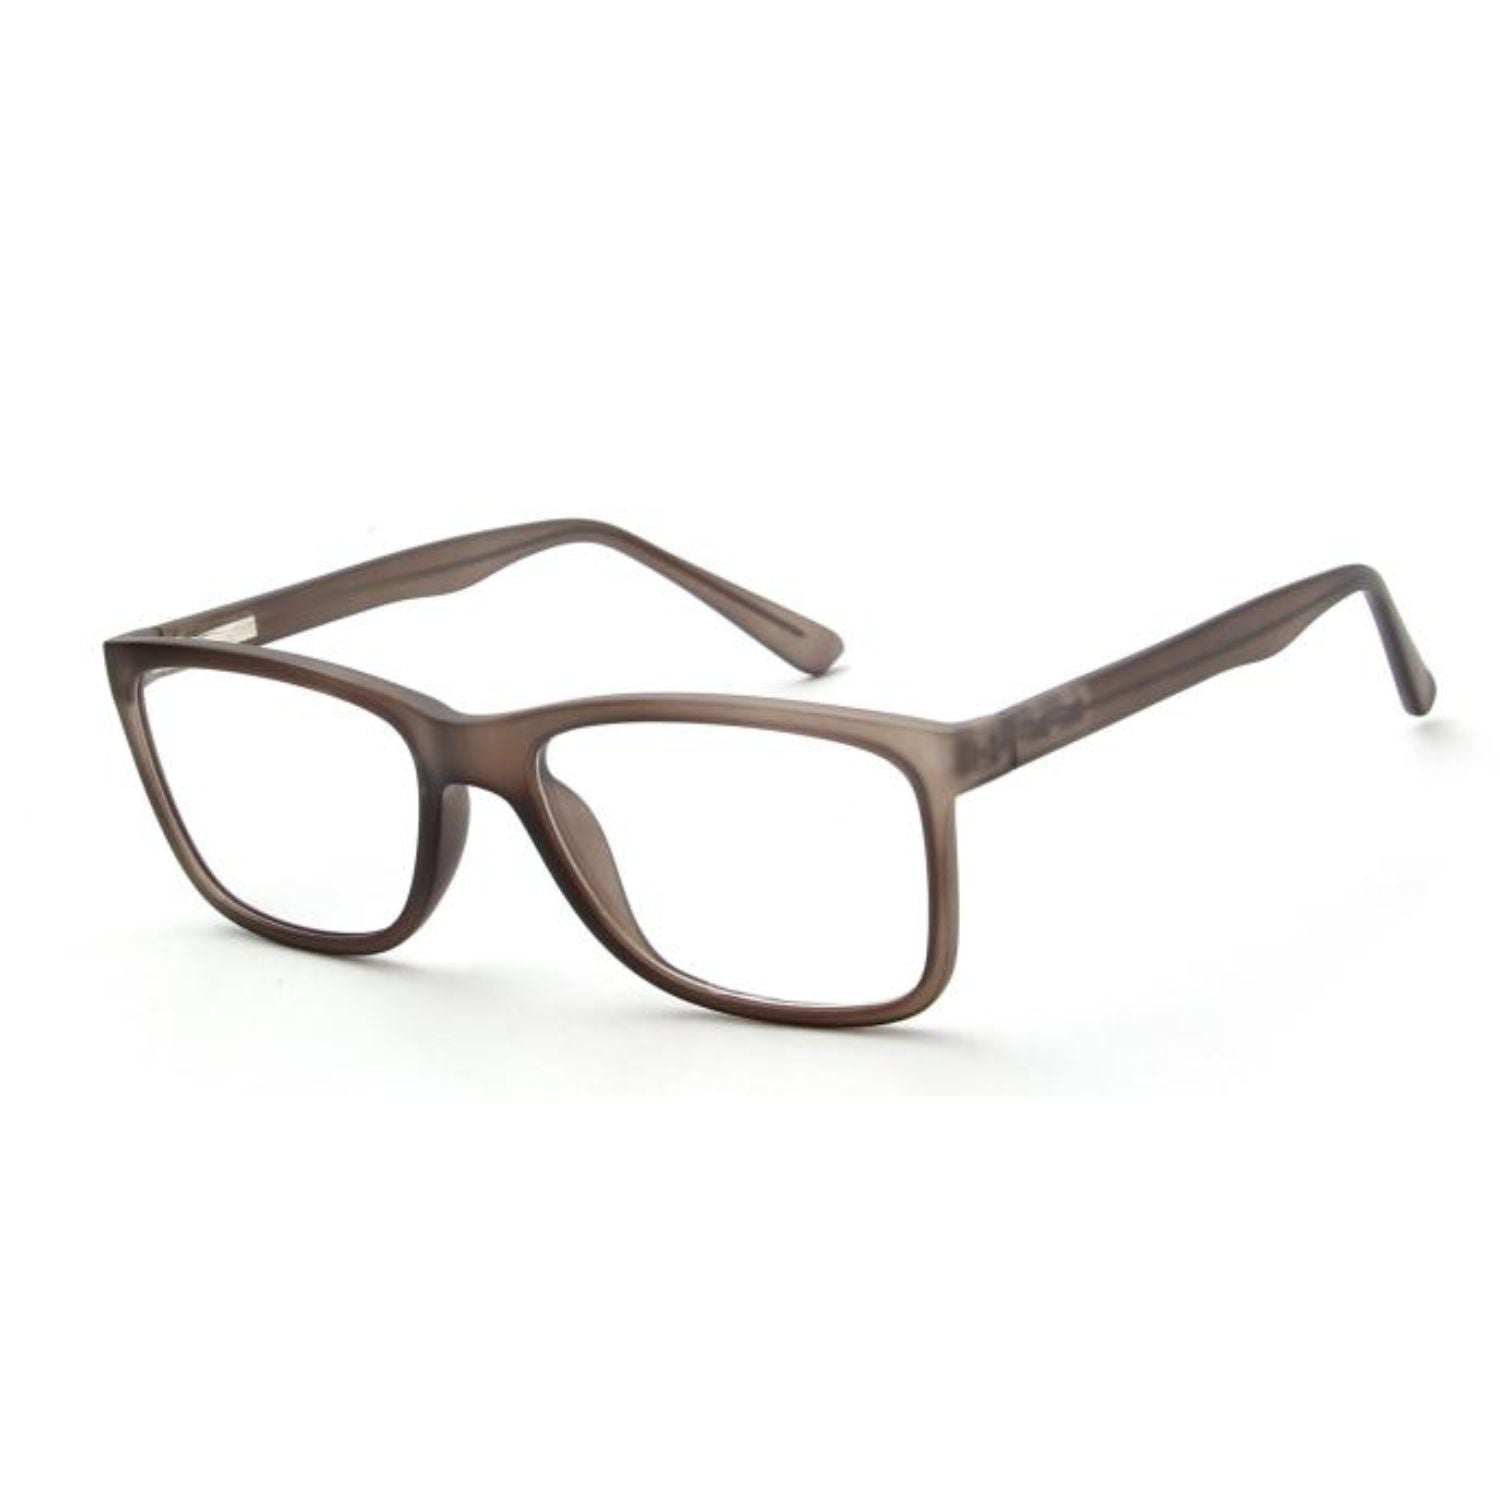 OTR35 - Square Classic Fashion Optical Glasses - Iris Fashion Inc. | Wholesale Sunglasses and Glasses